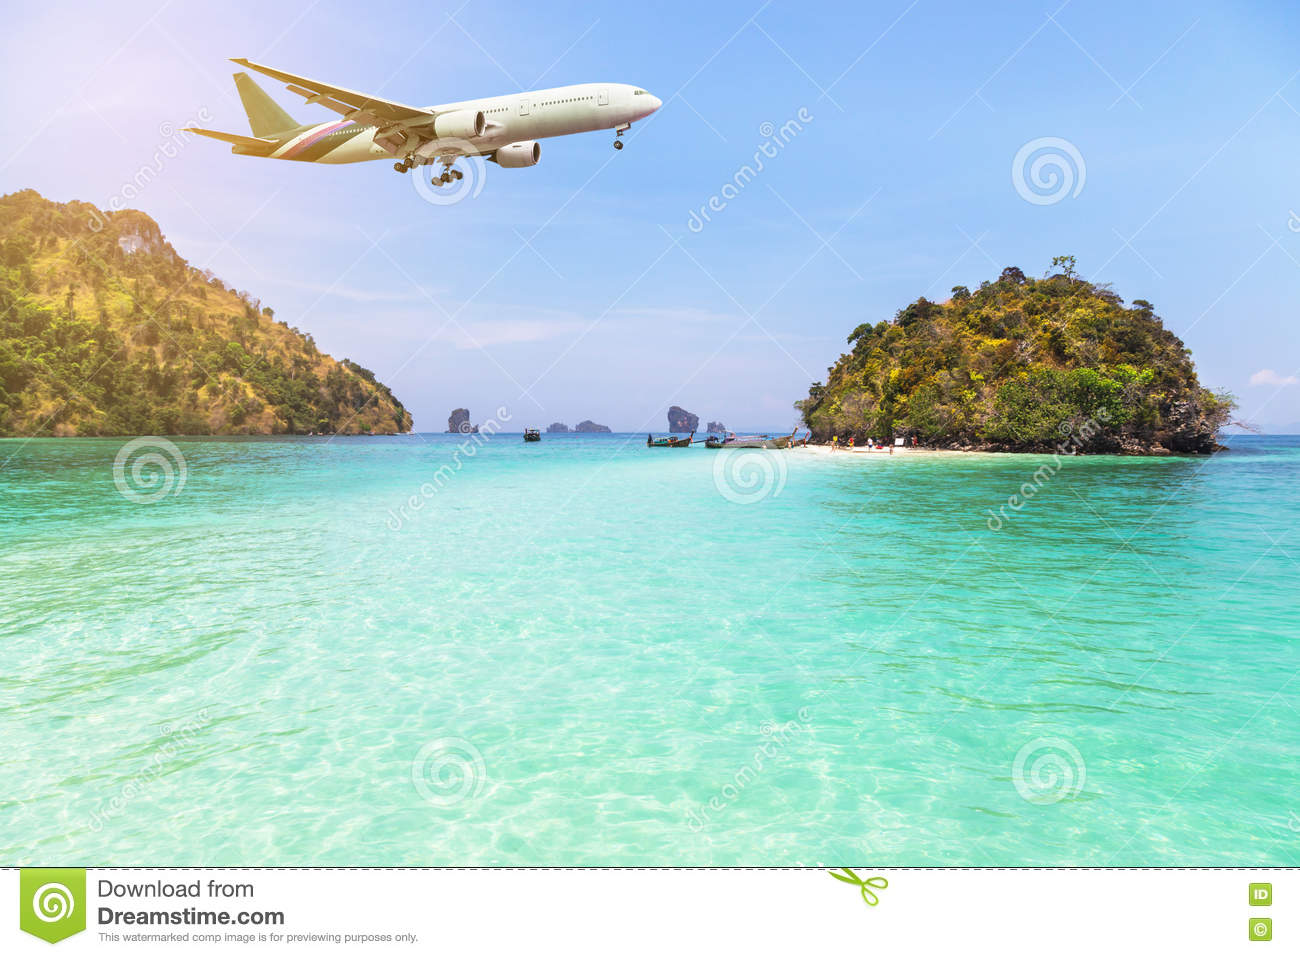 Airplane flying over above tropical island in the sea.